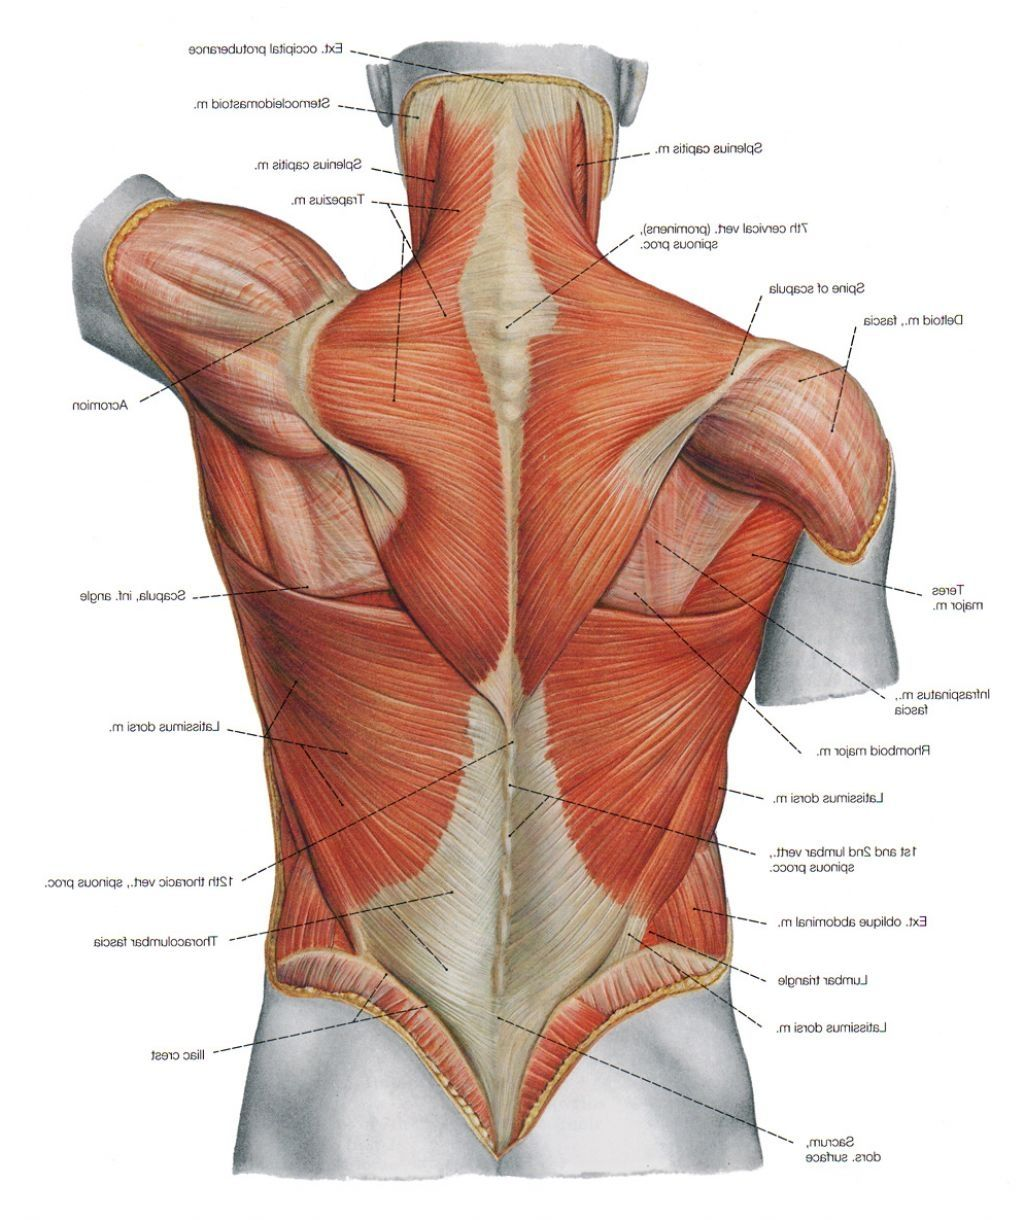 hight resolution of pin by reyman panganiban on anatomy in 2019 shoulder muscle back muscles diagram pain back diagram muscles